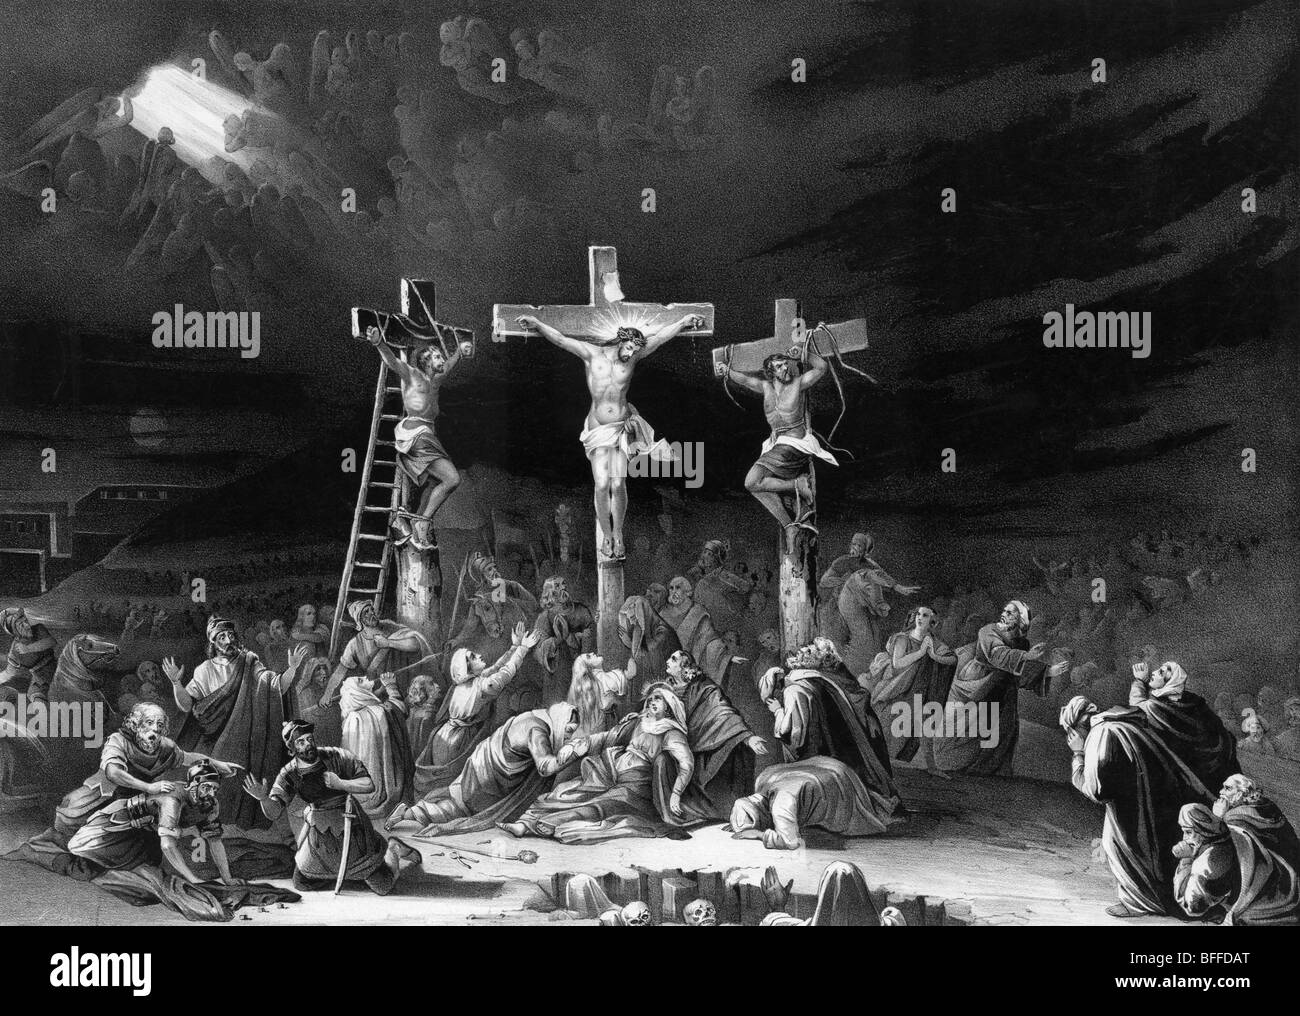 print depicting the crucifixion of jesus christ at golgotha